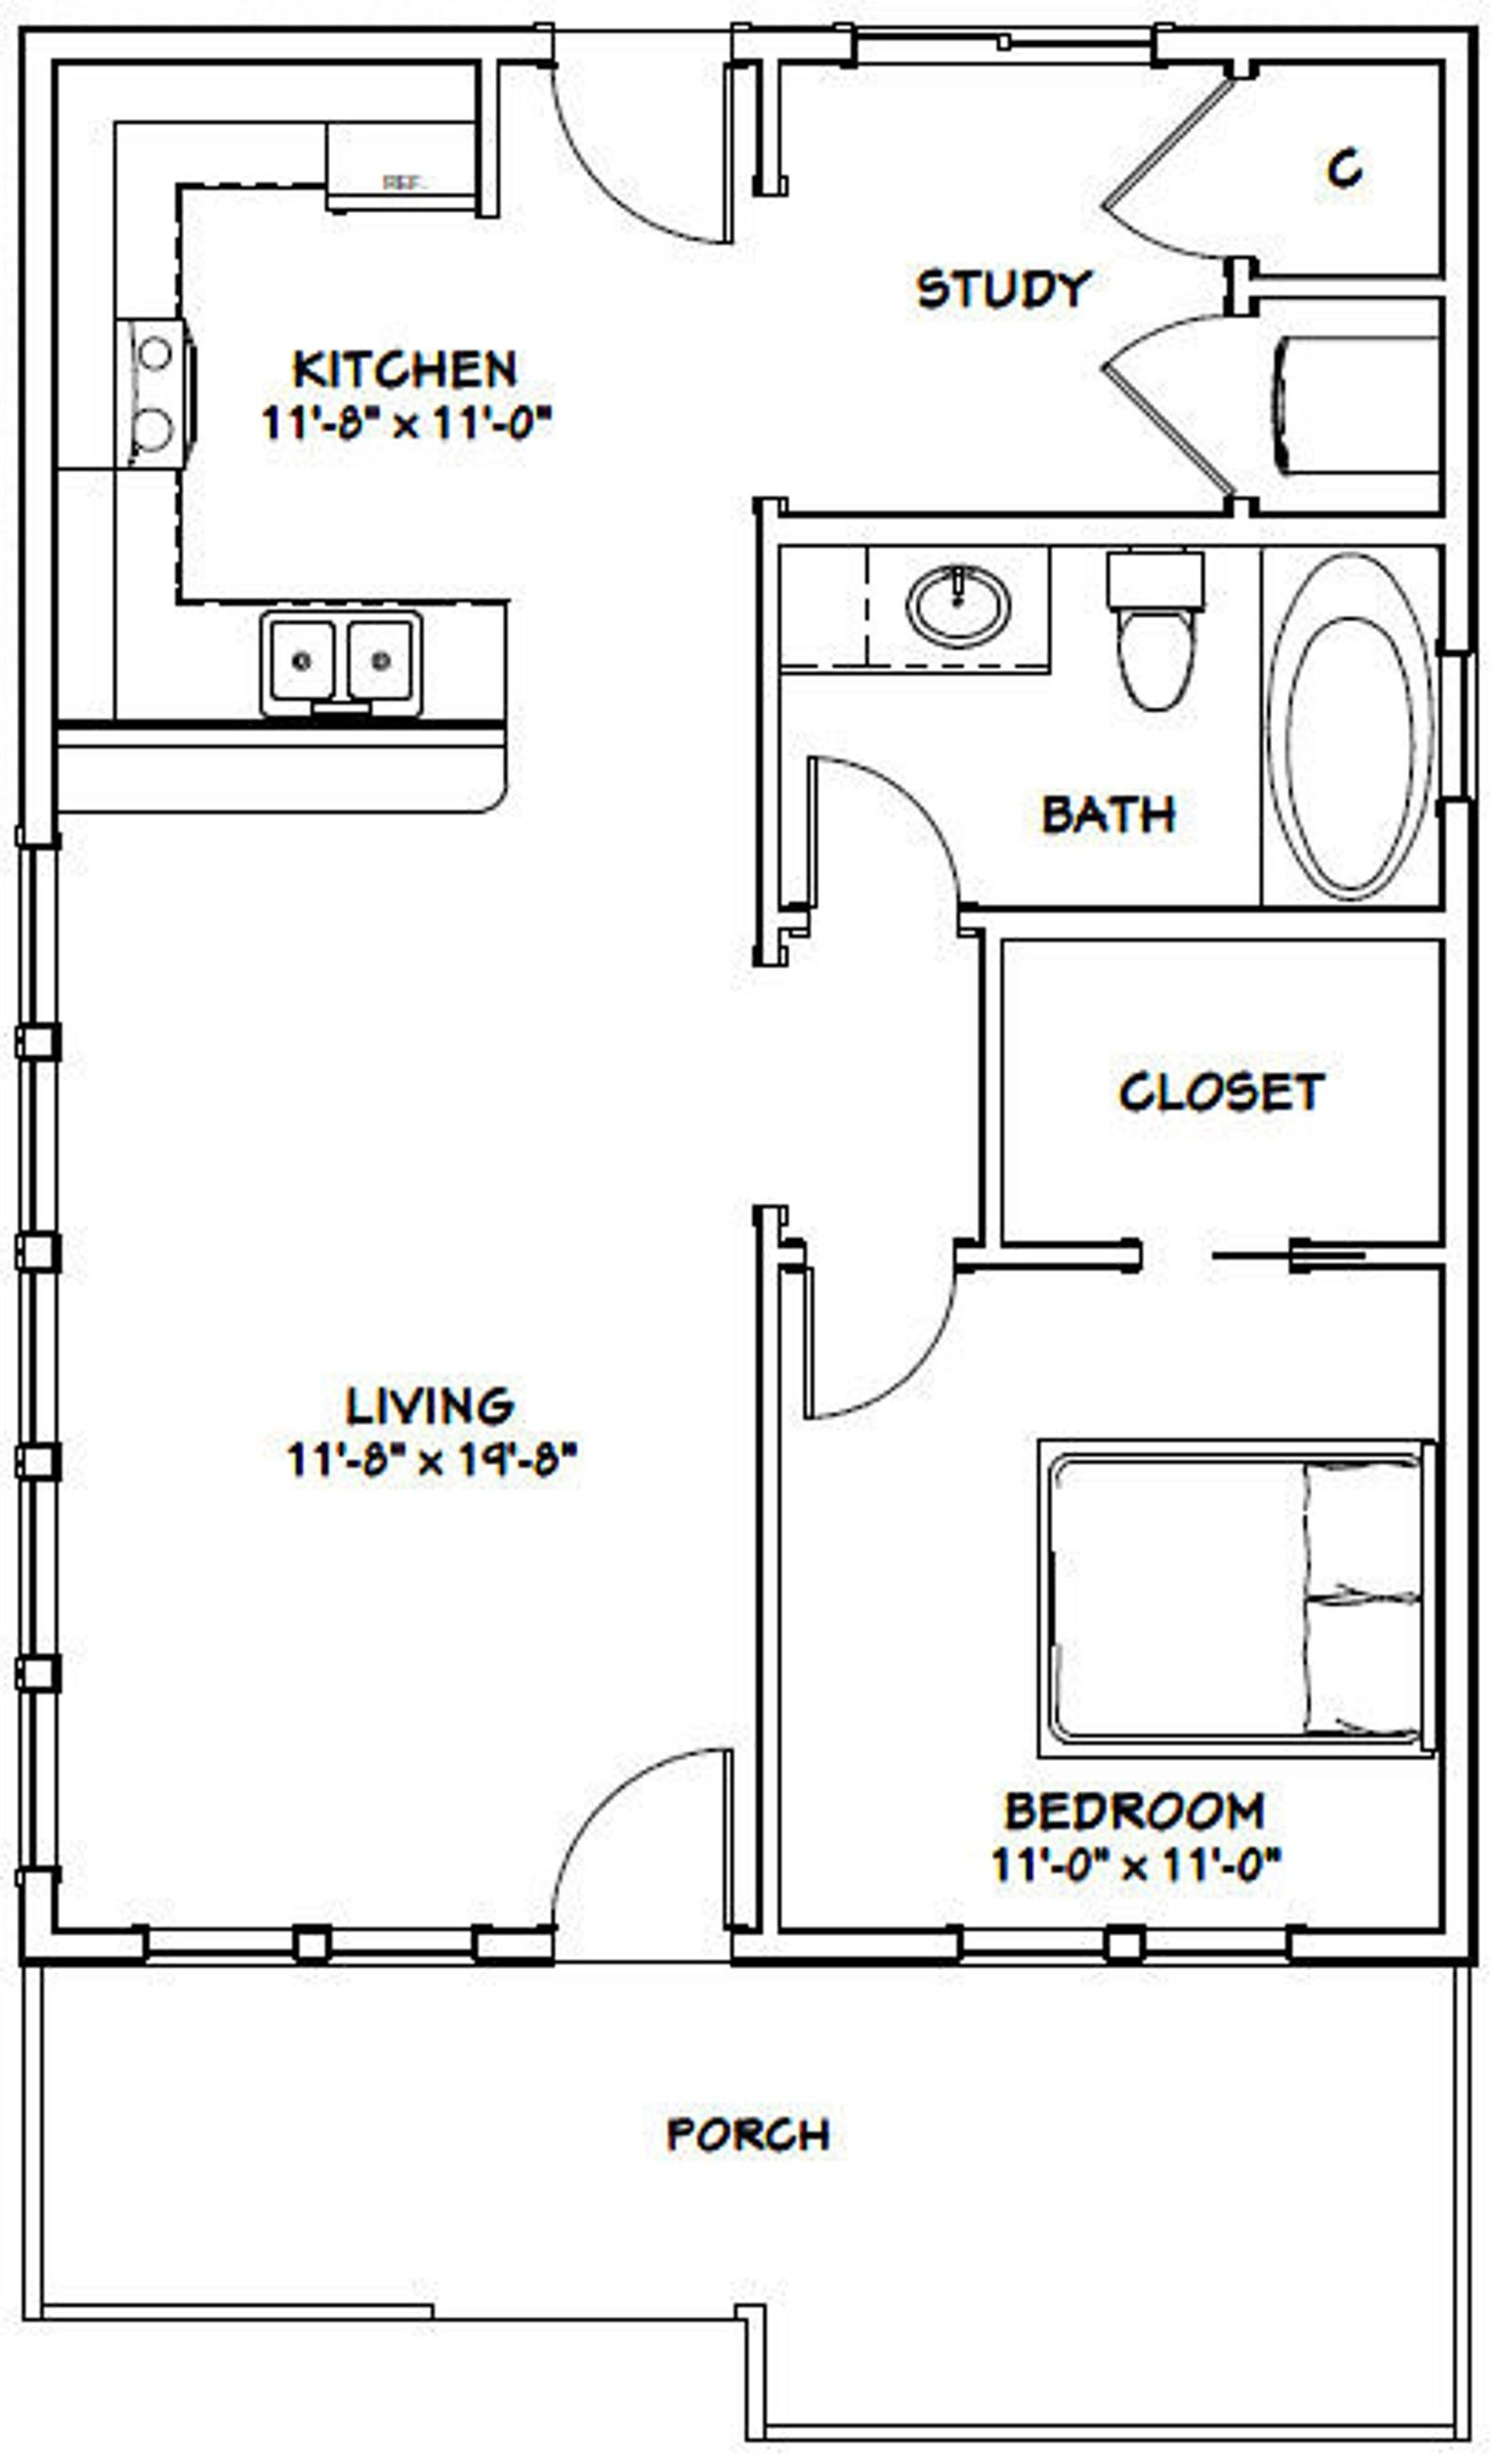 24x32 House 1 Bedroom 1 Bath 768 Sq Ft Pdf Floor Plan Instant Download Model 1 In 2021 1 Bedroom House Plans Small House Floor Plans Tiny House Floor Plans